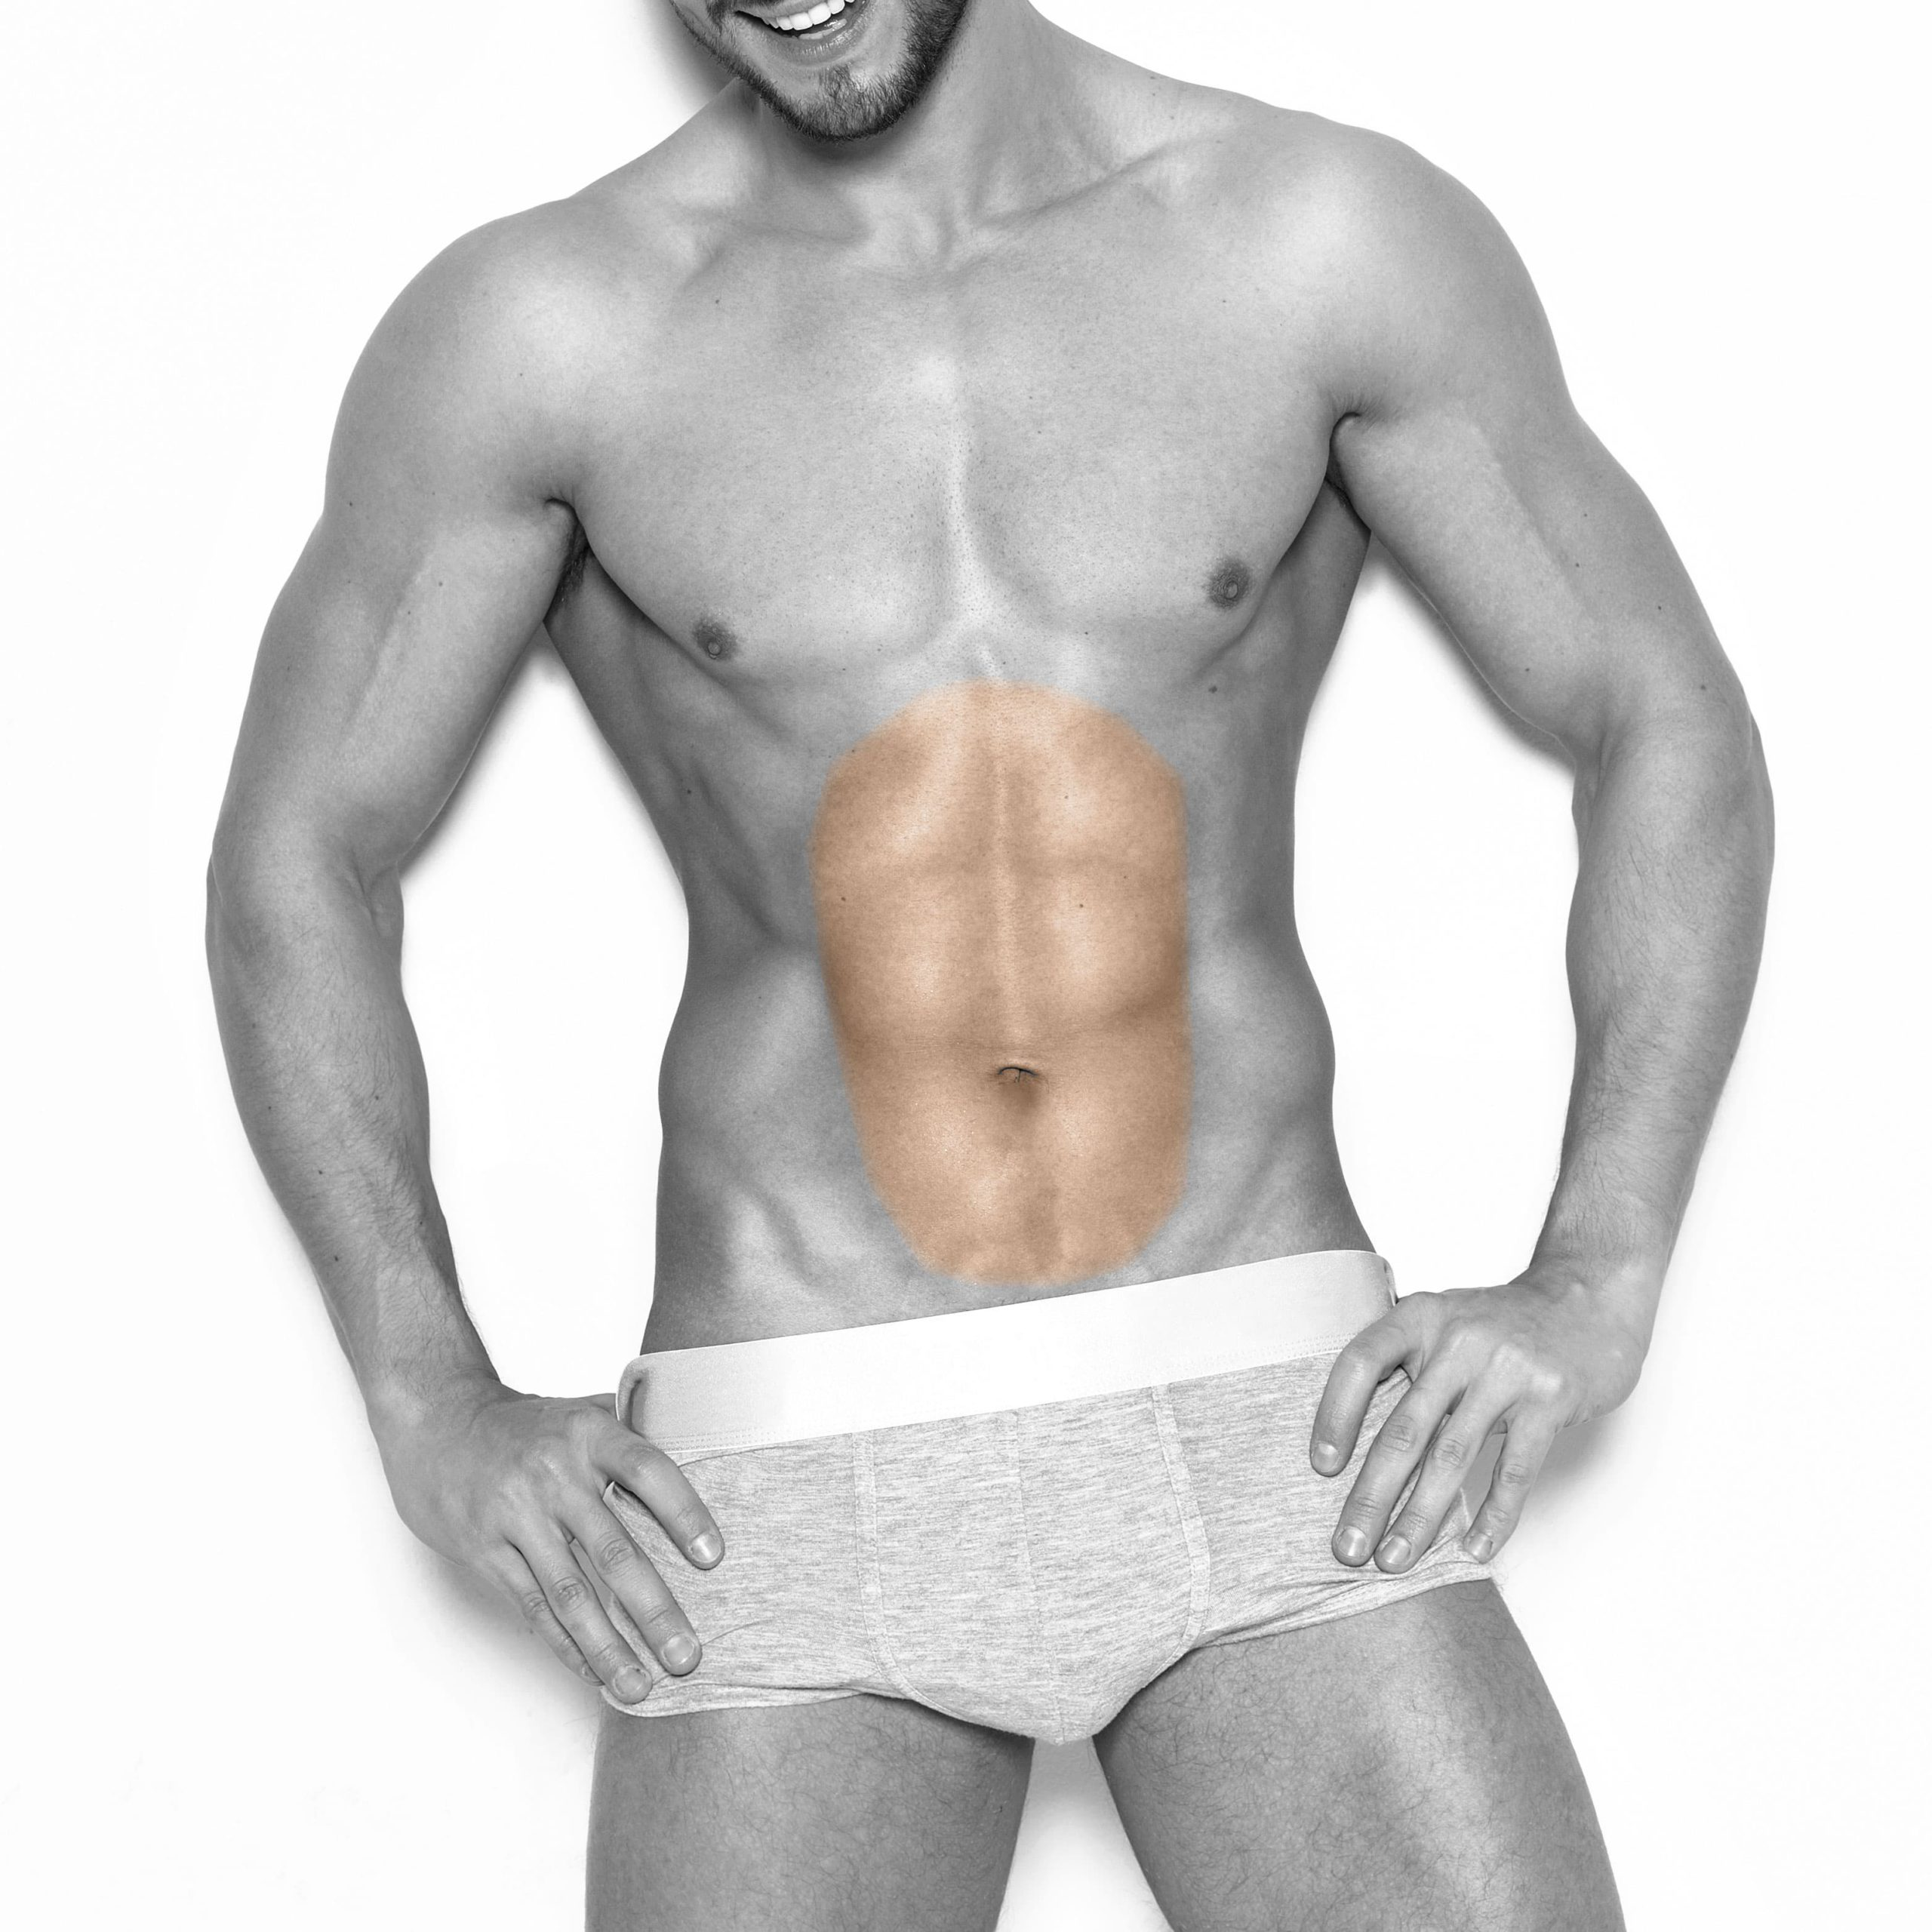 Men's Stomach Laser Hair Removal